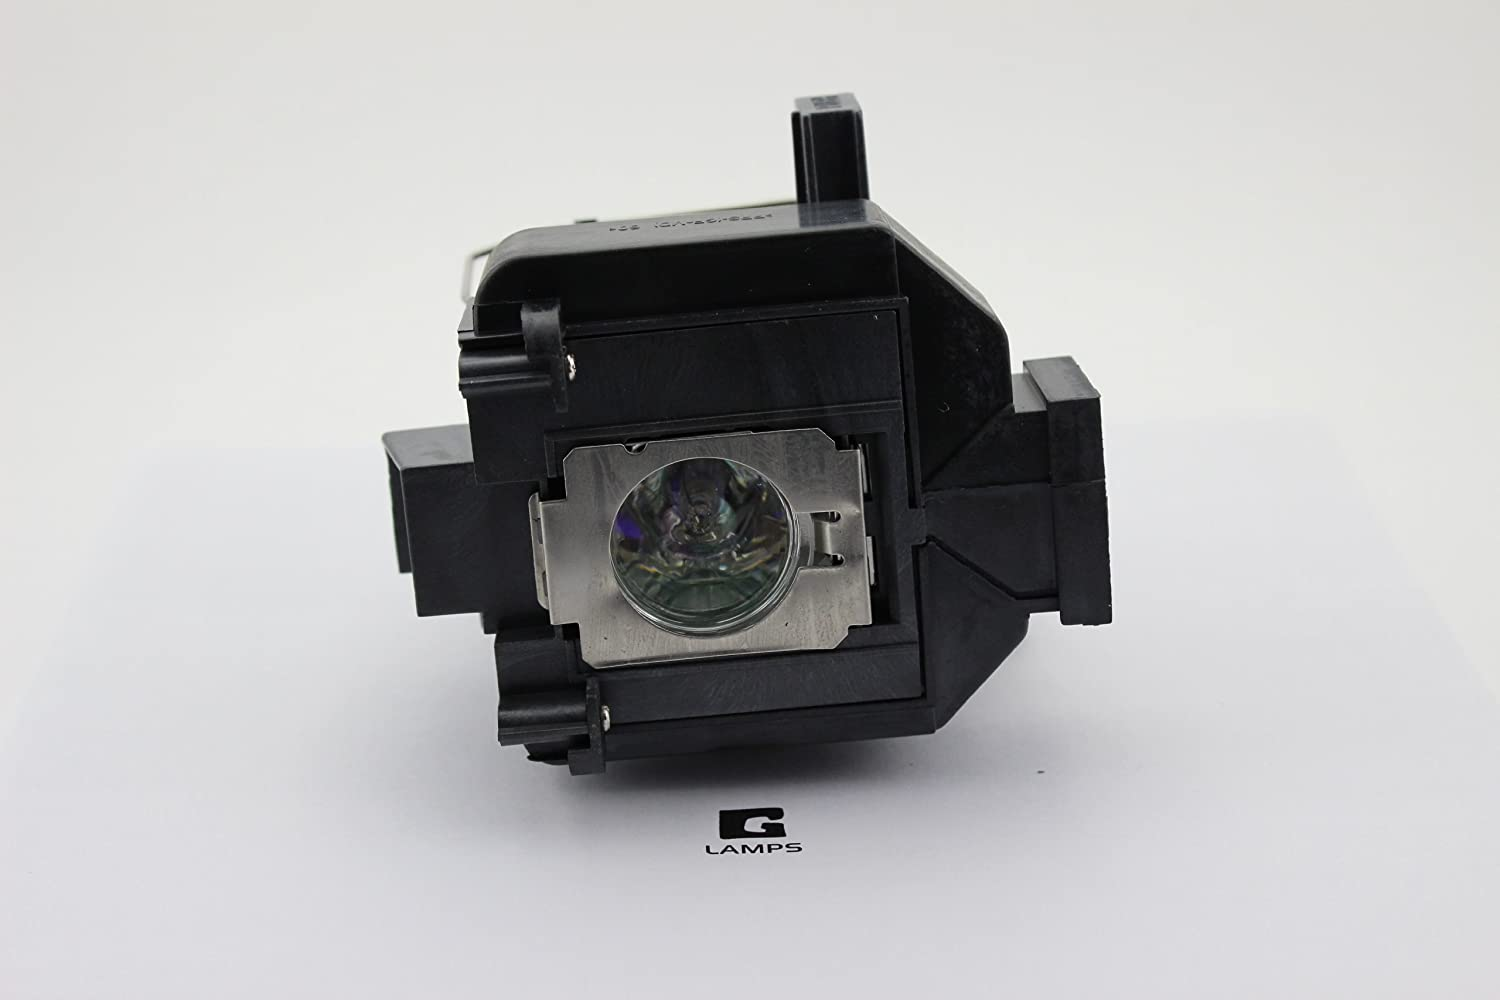 EH-TW8000 Projectors PowerLite Home Cinema 5020UB // 5010 // 5020UBe // 5010e Lamp with Housing for Epson PowerLite Pro Cinema 6010 GLAMPS V13H010L69 // ELPLP69 HC5010 EH-TW9000